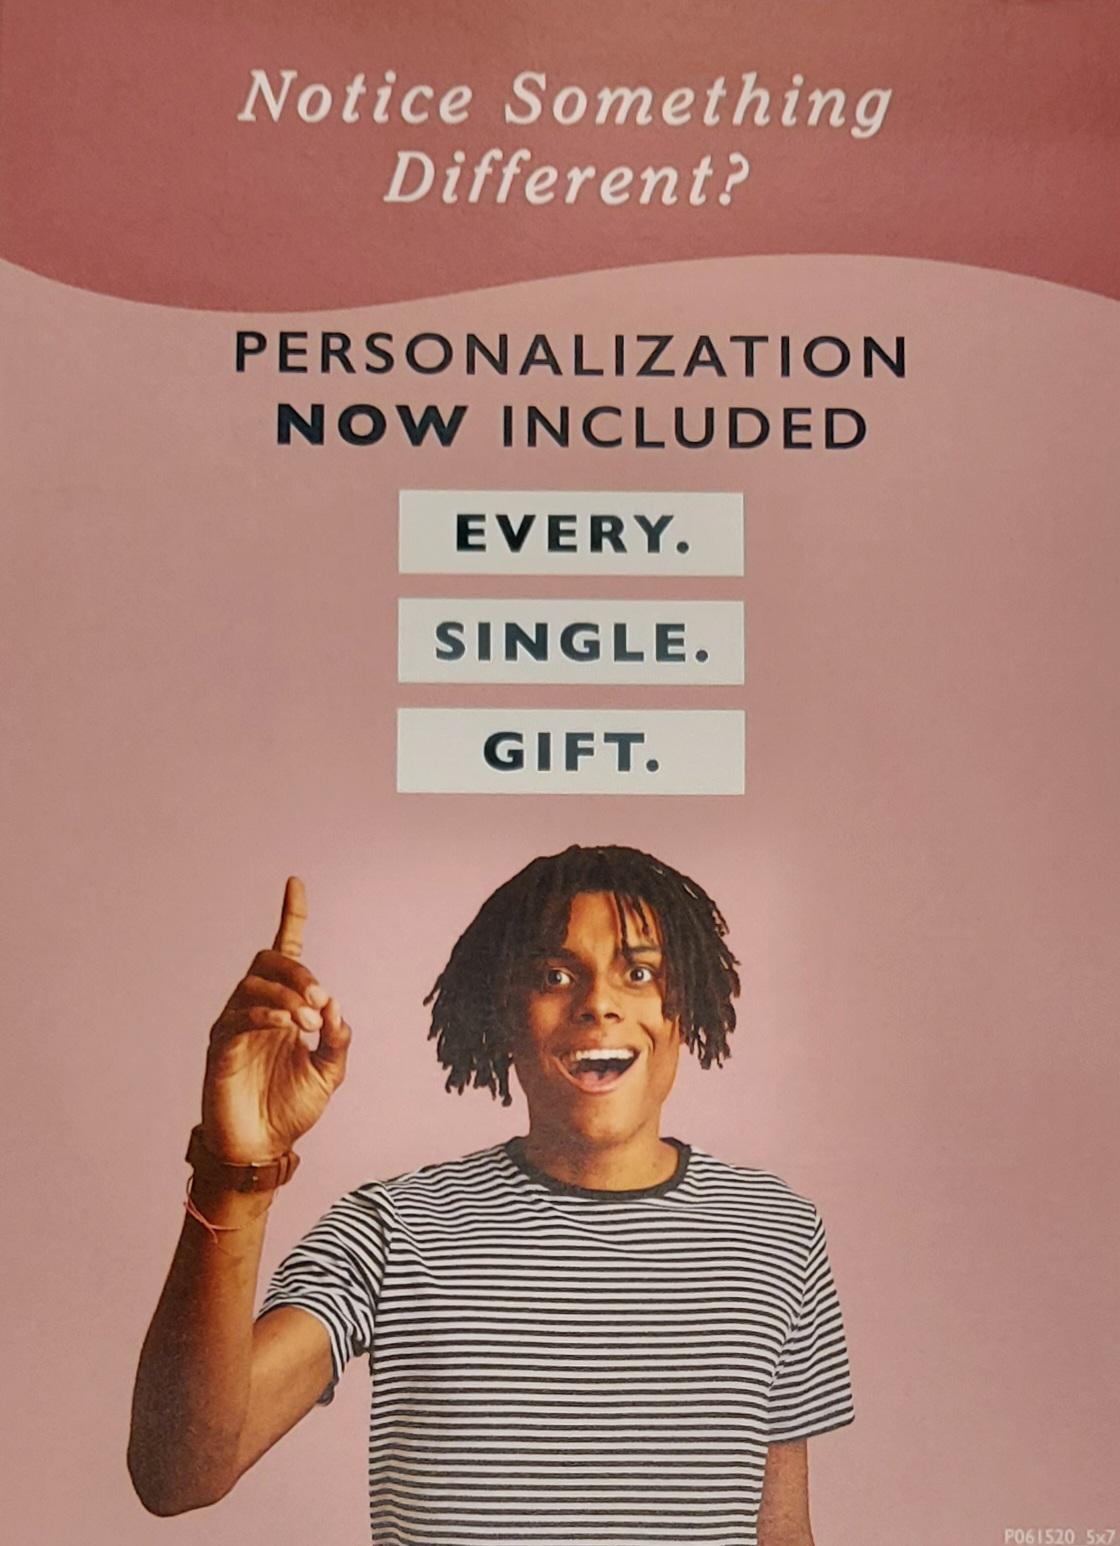 Personalization Now Included!